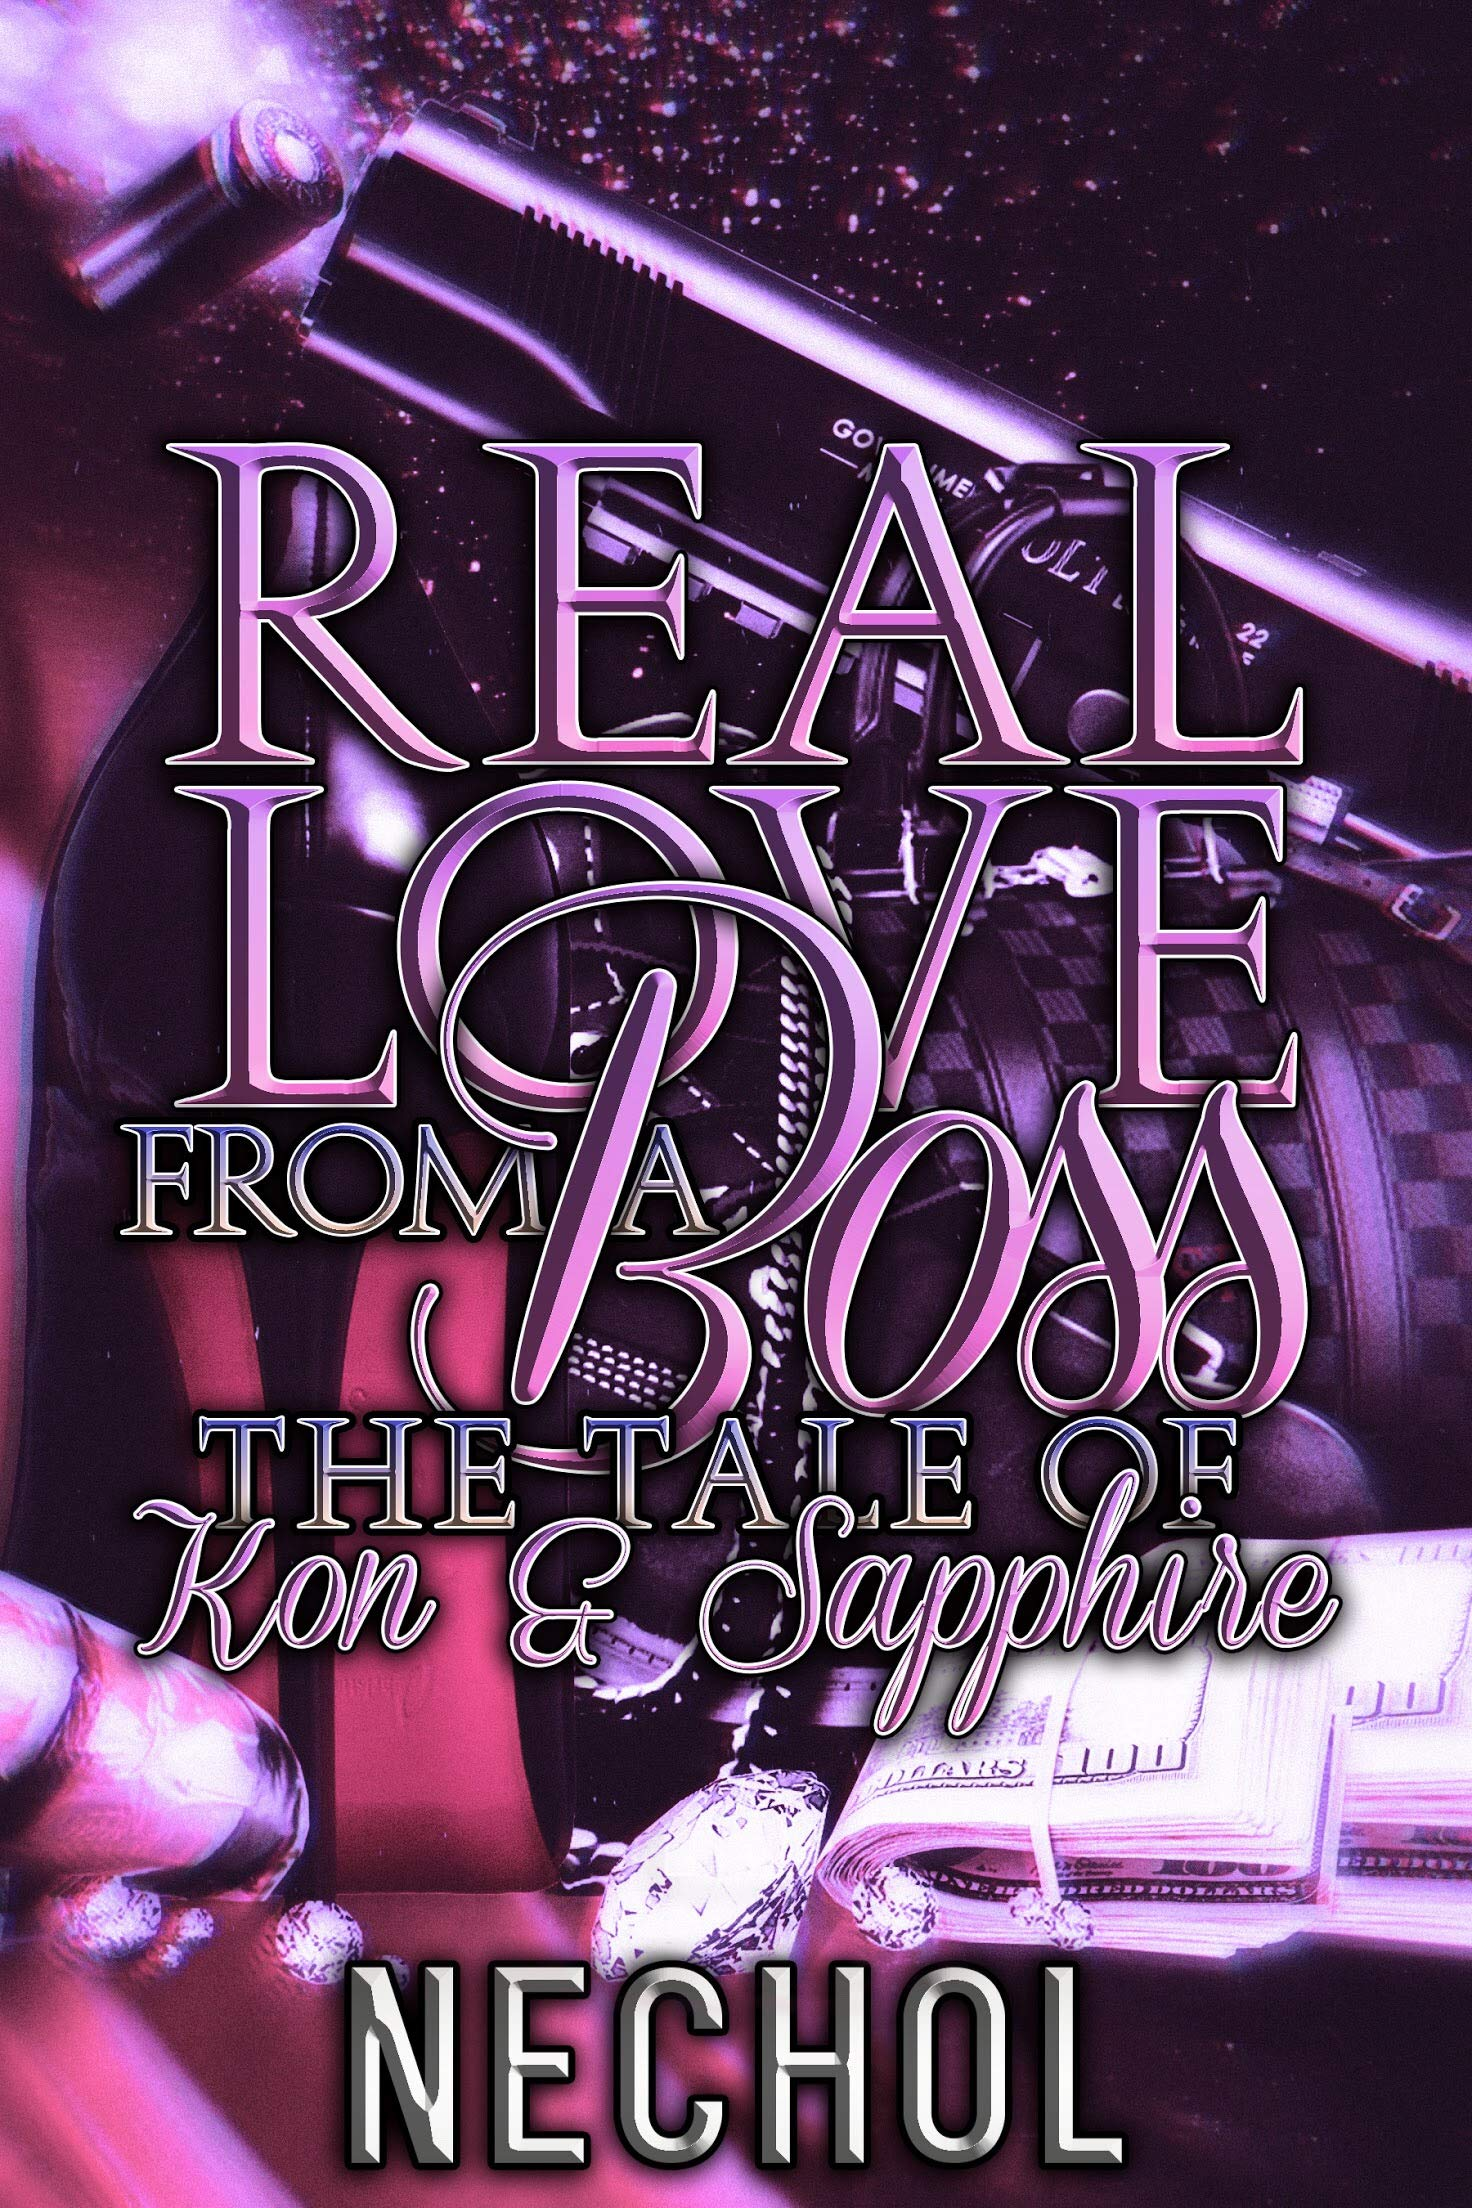 Real love from a boss: The tale of Kon & Sapphire